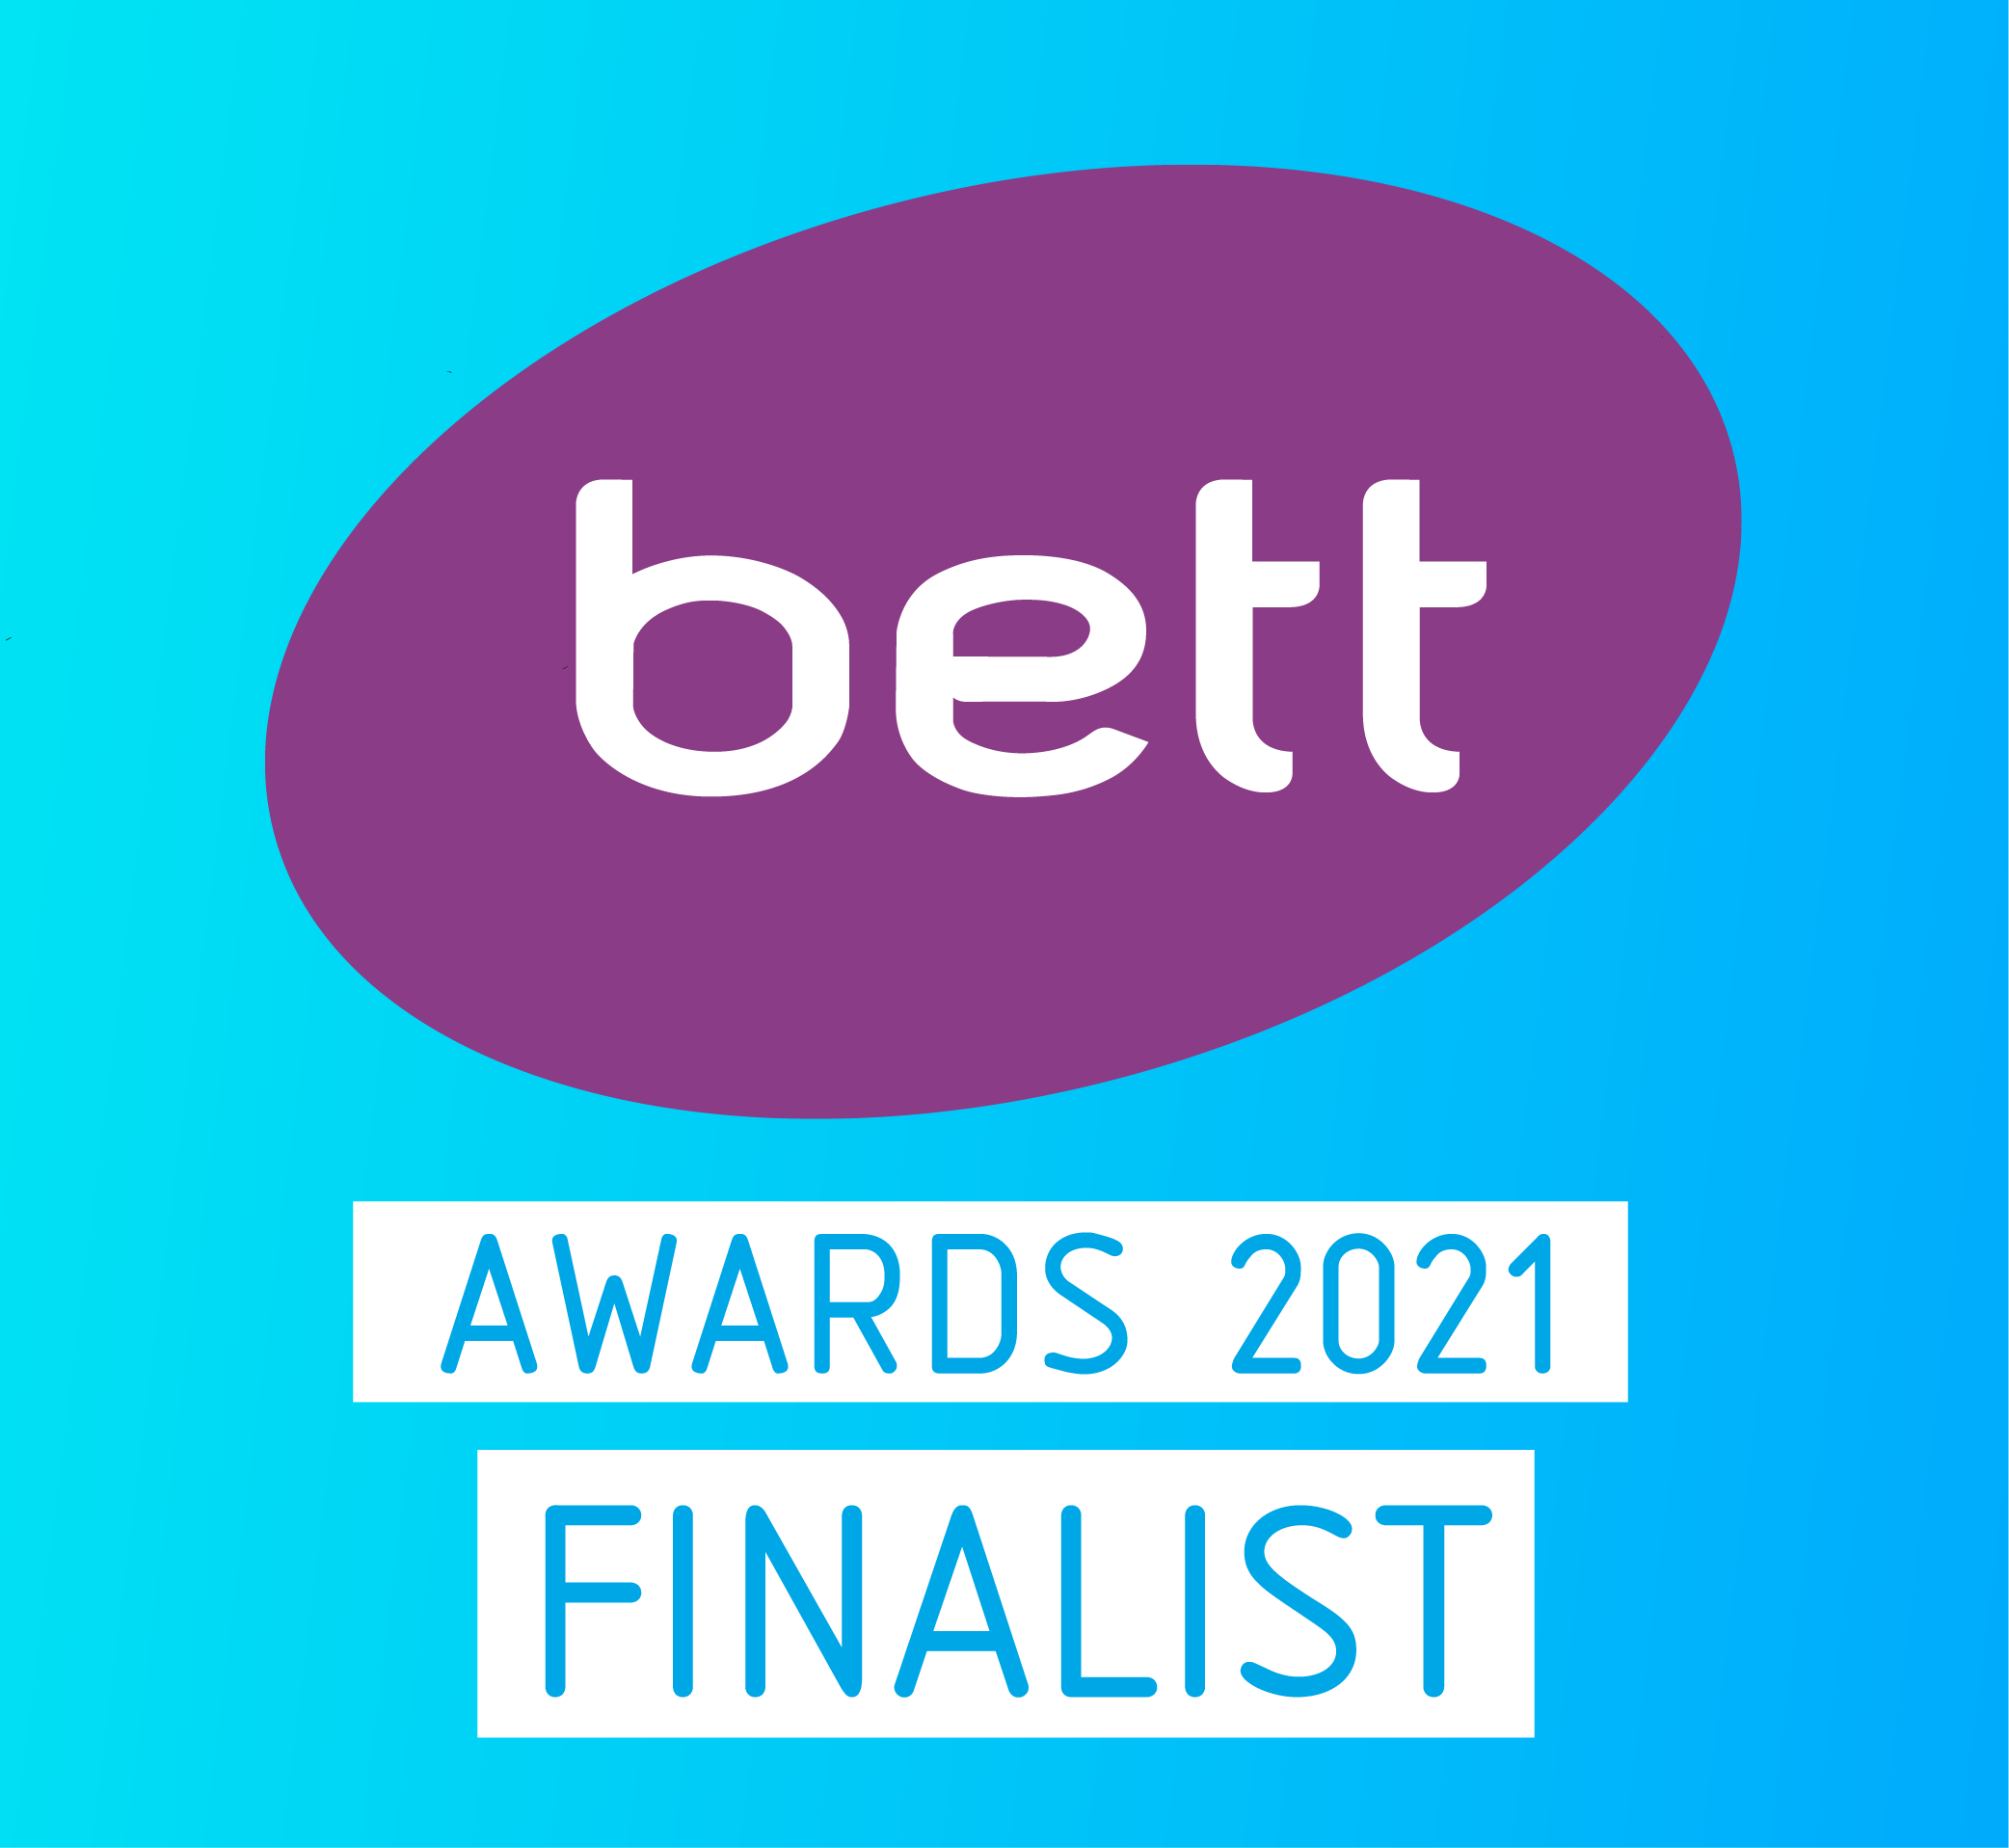 Bett Awards Finalist Logo 2021